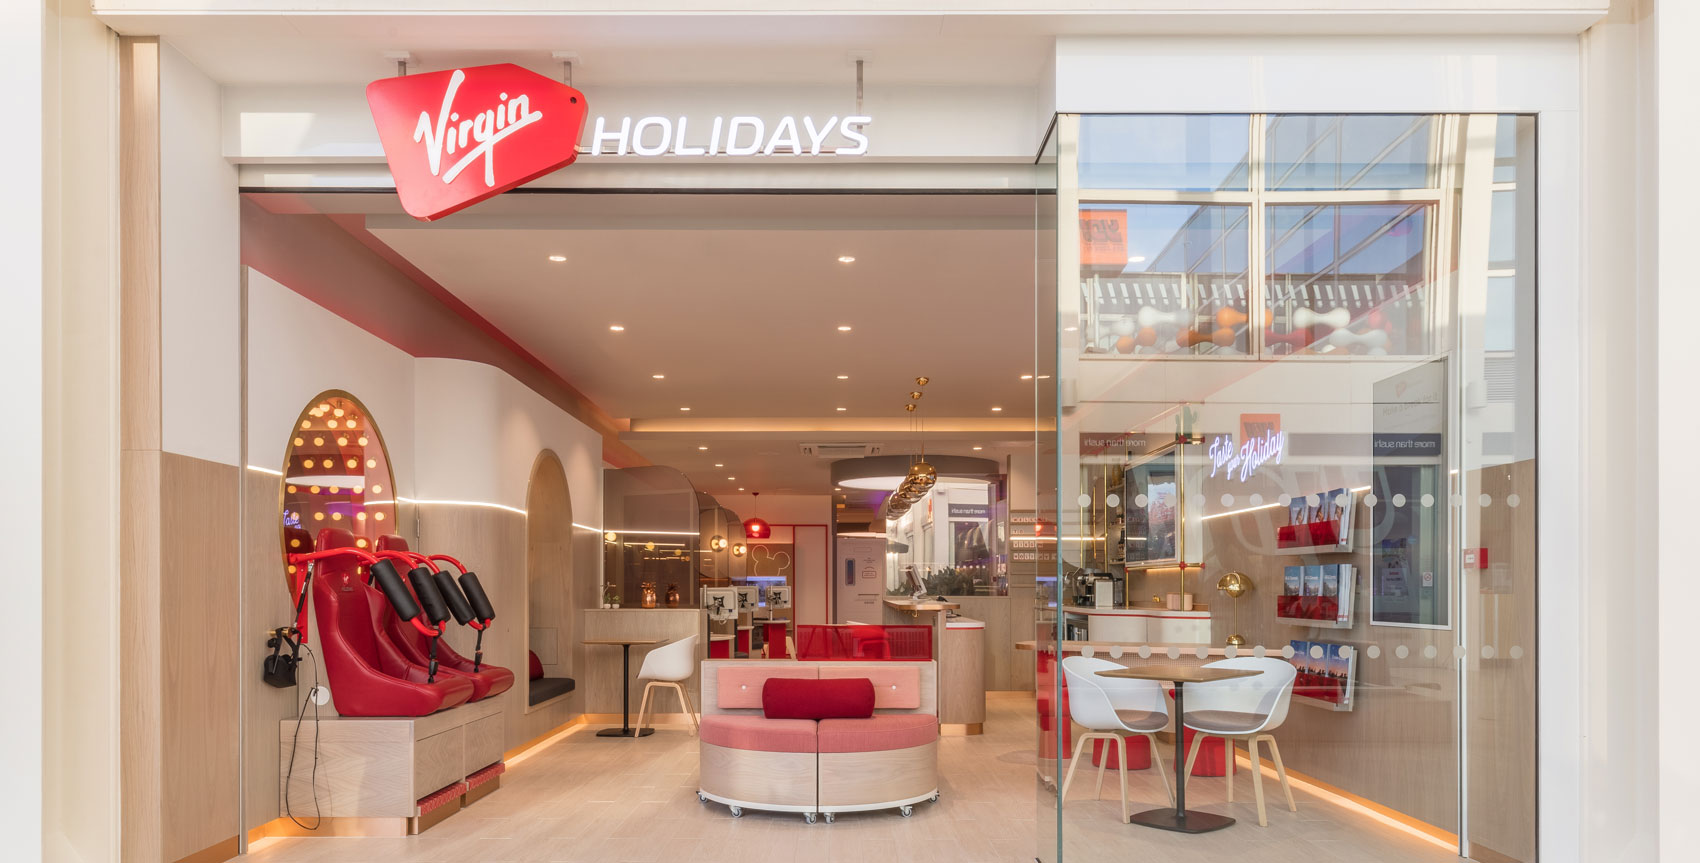 Virgin Holidays - Milton Keynes